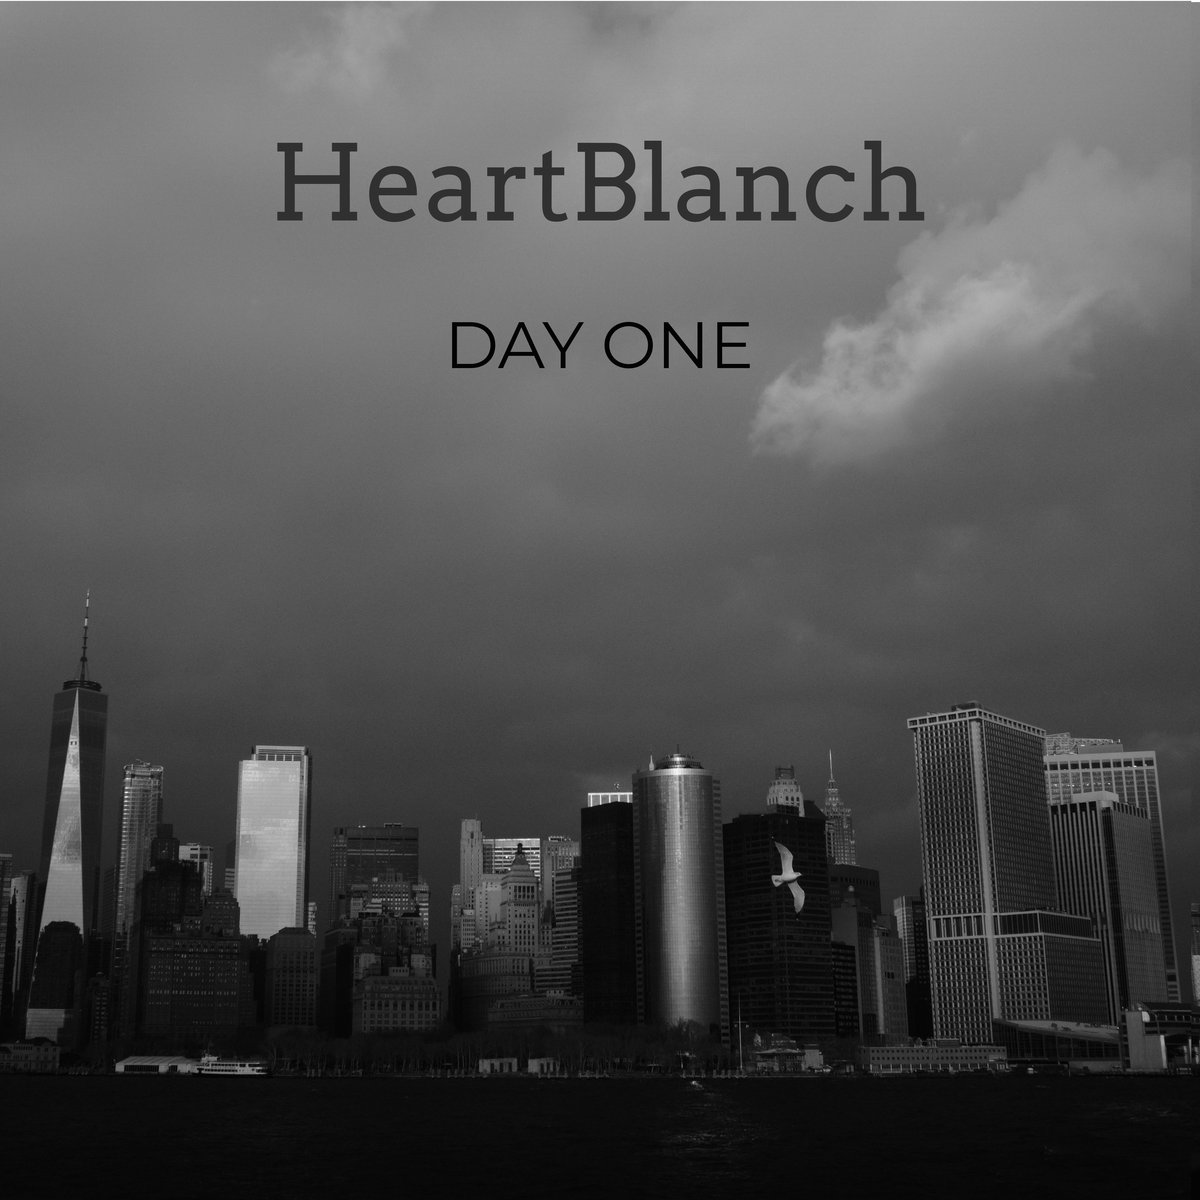 HeartBlanch — Day One